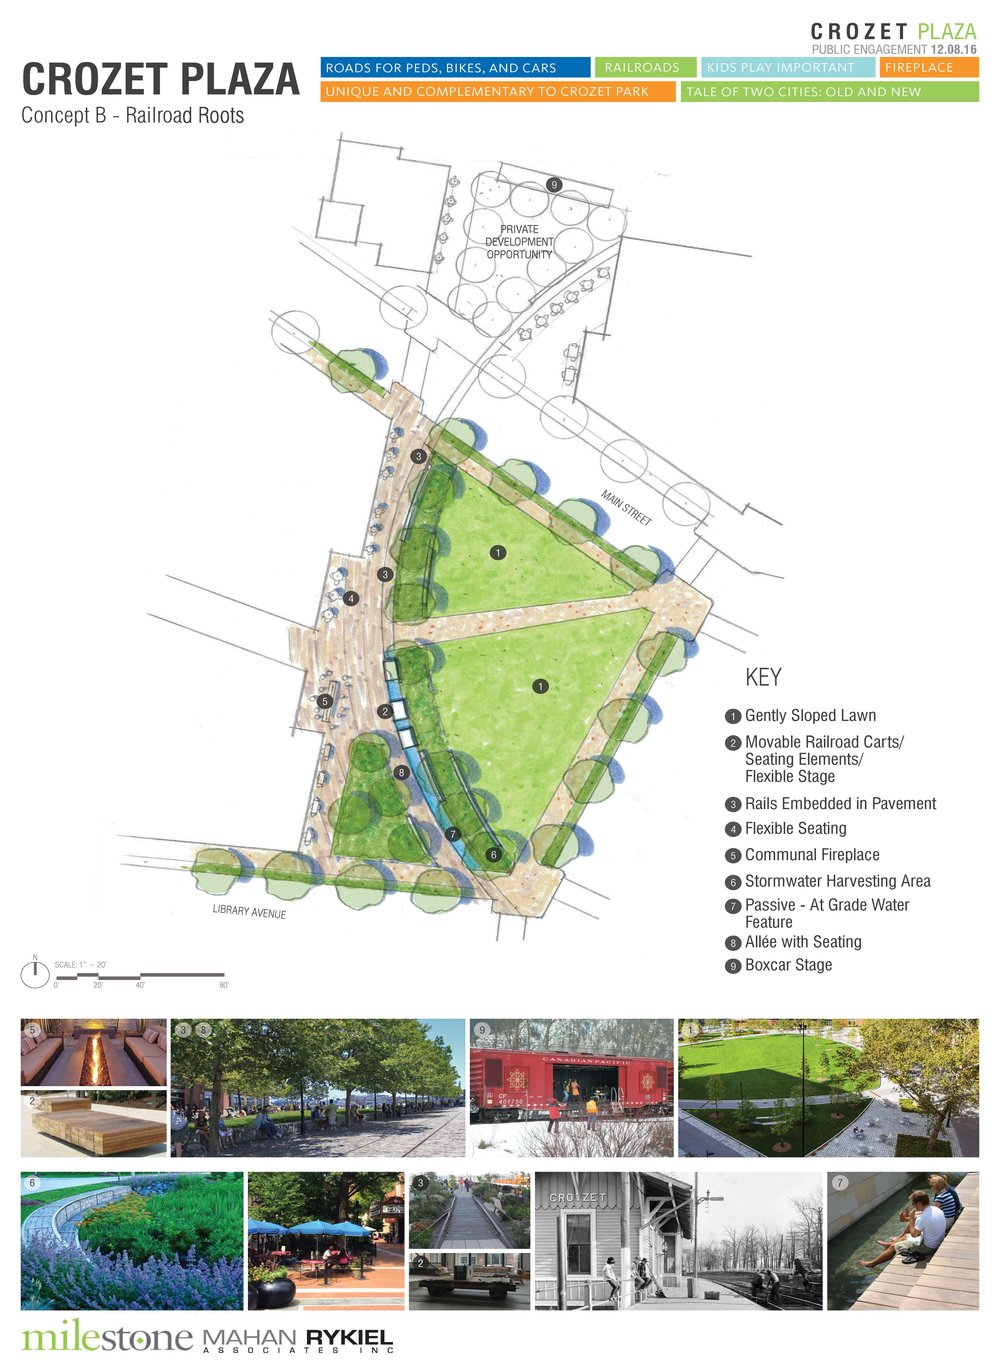 Crozet Plaza Design B